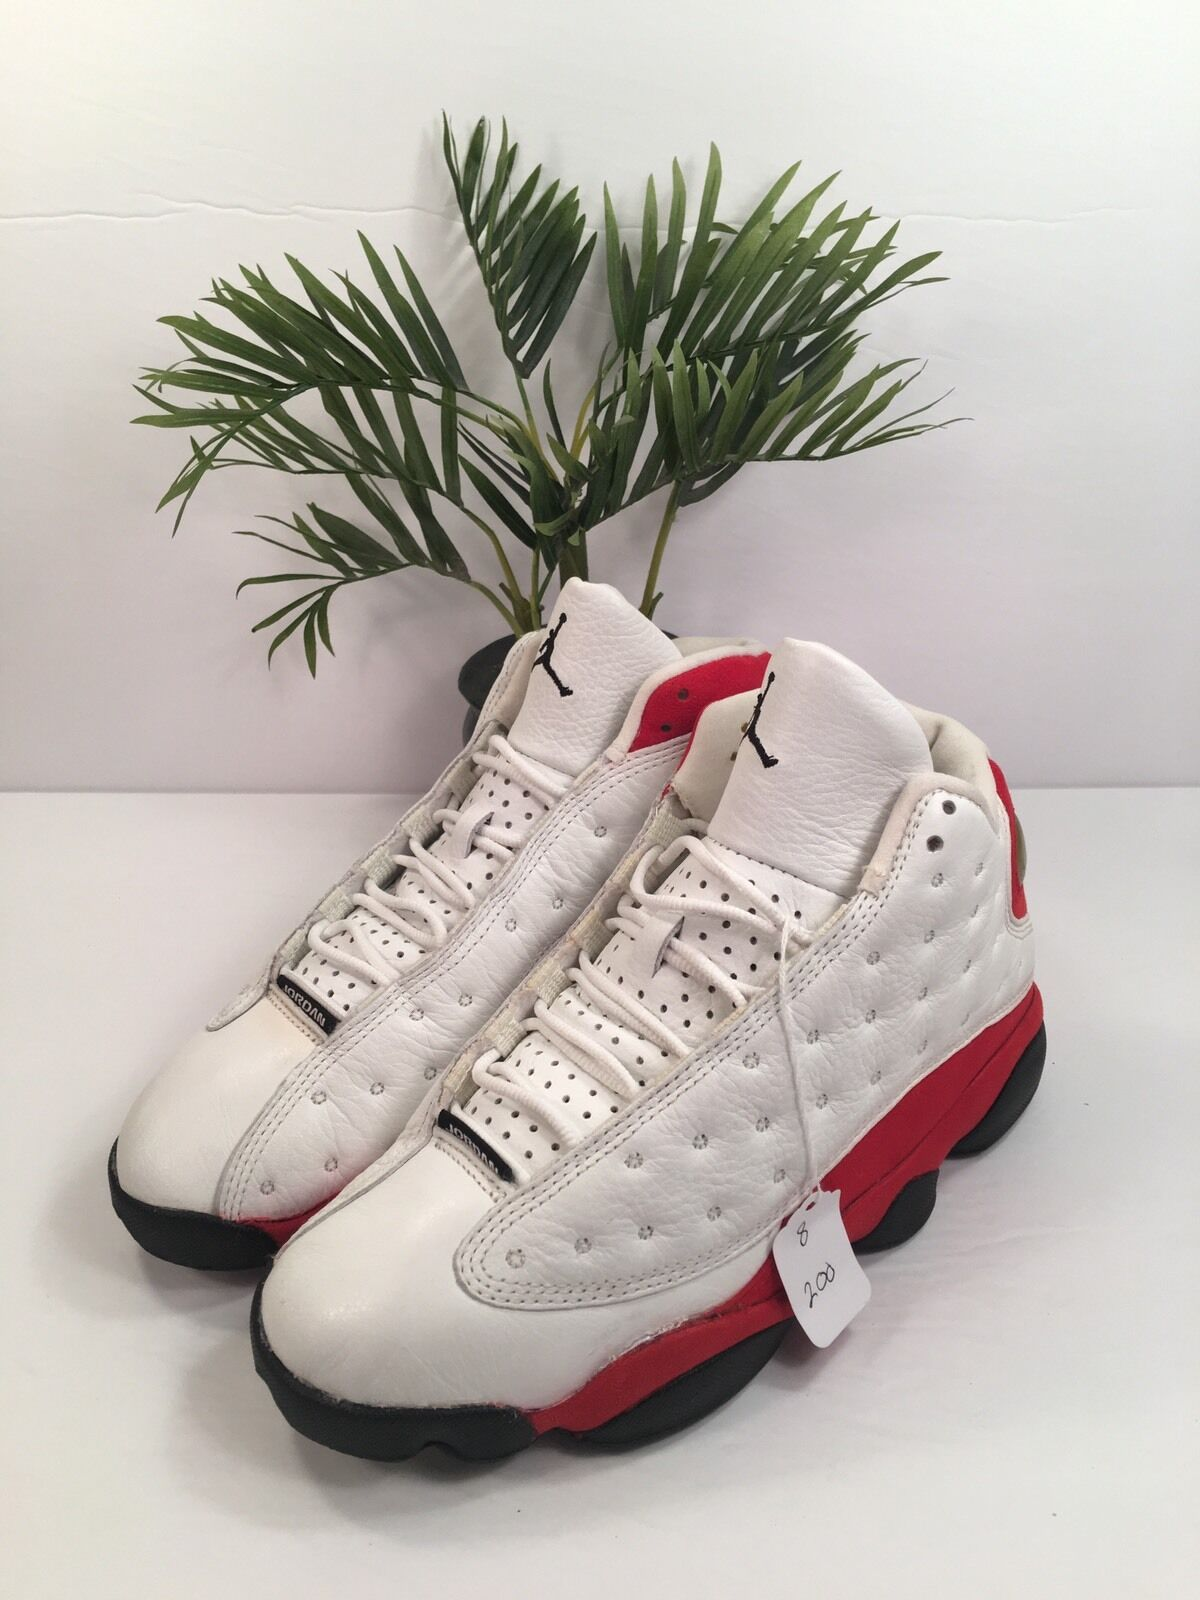 RARE Nike Air Jordan XIII OG 1997 Cherry Red White Black Sz 8 136002-101 VNTG